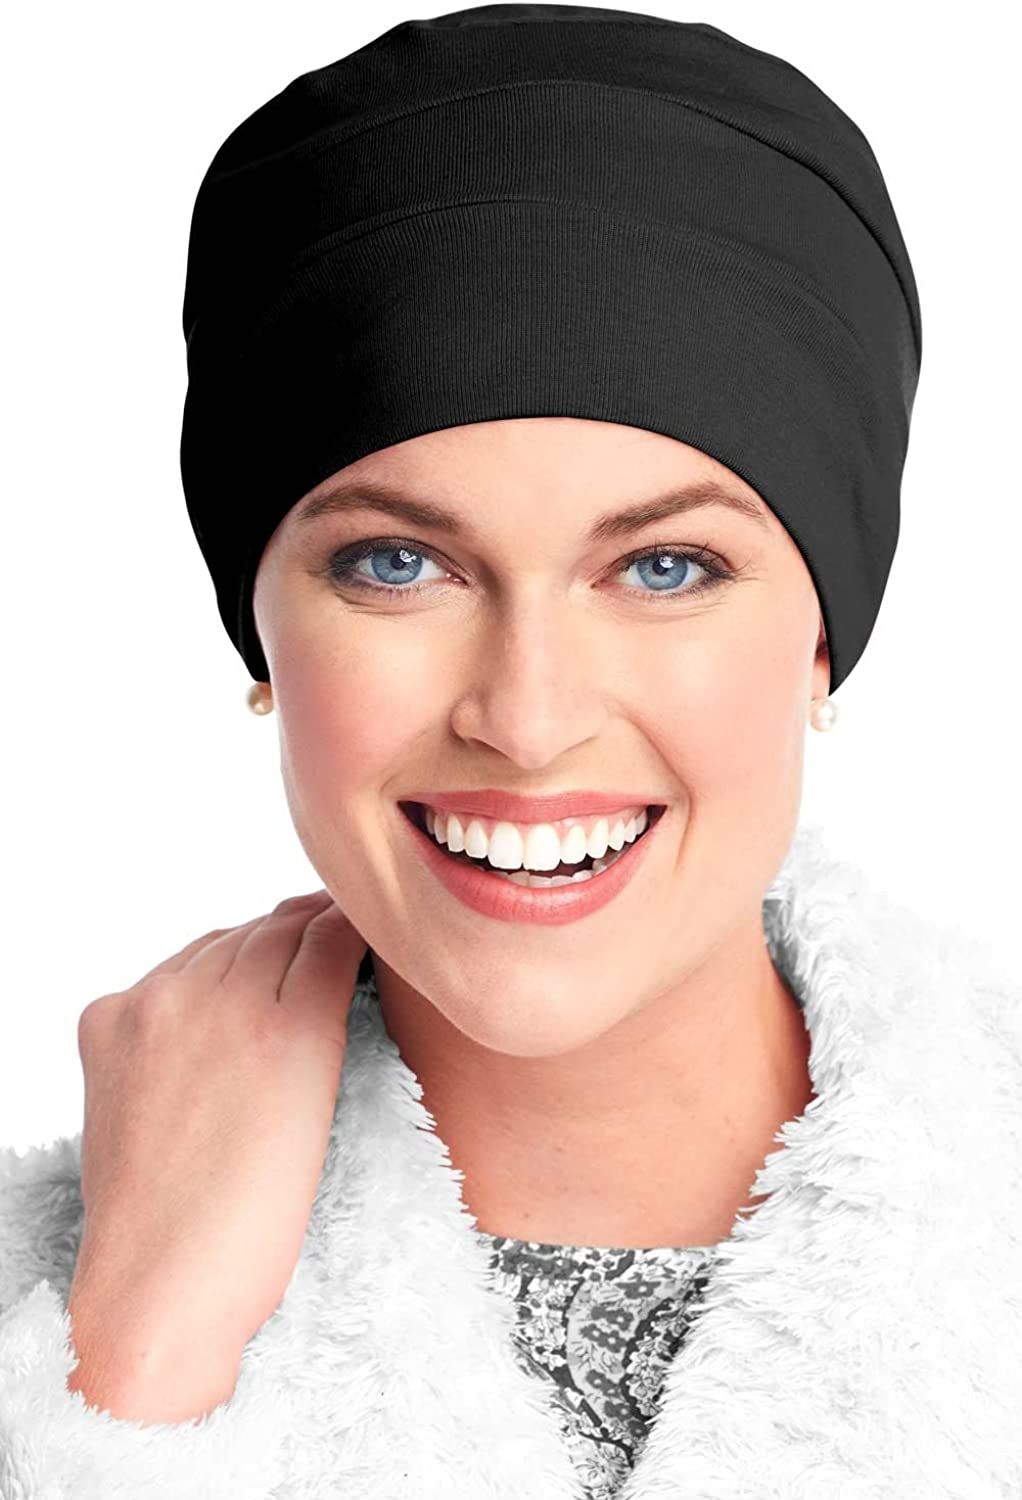 Headcovers Unlimited Three Seam Cotton Sleep Cap-Caps for Women with Chemo Cancer Hair Loss